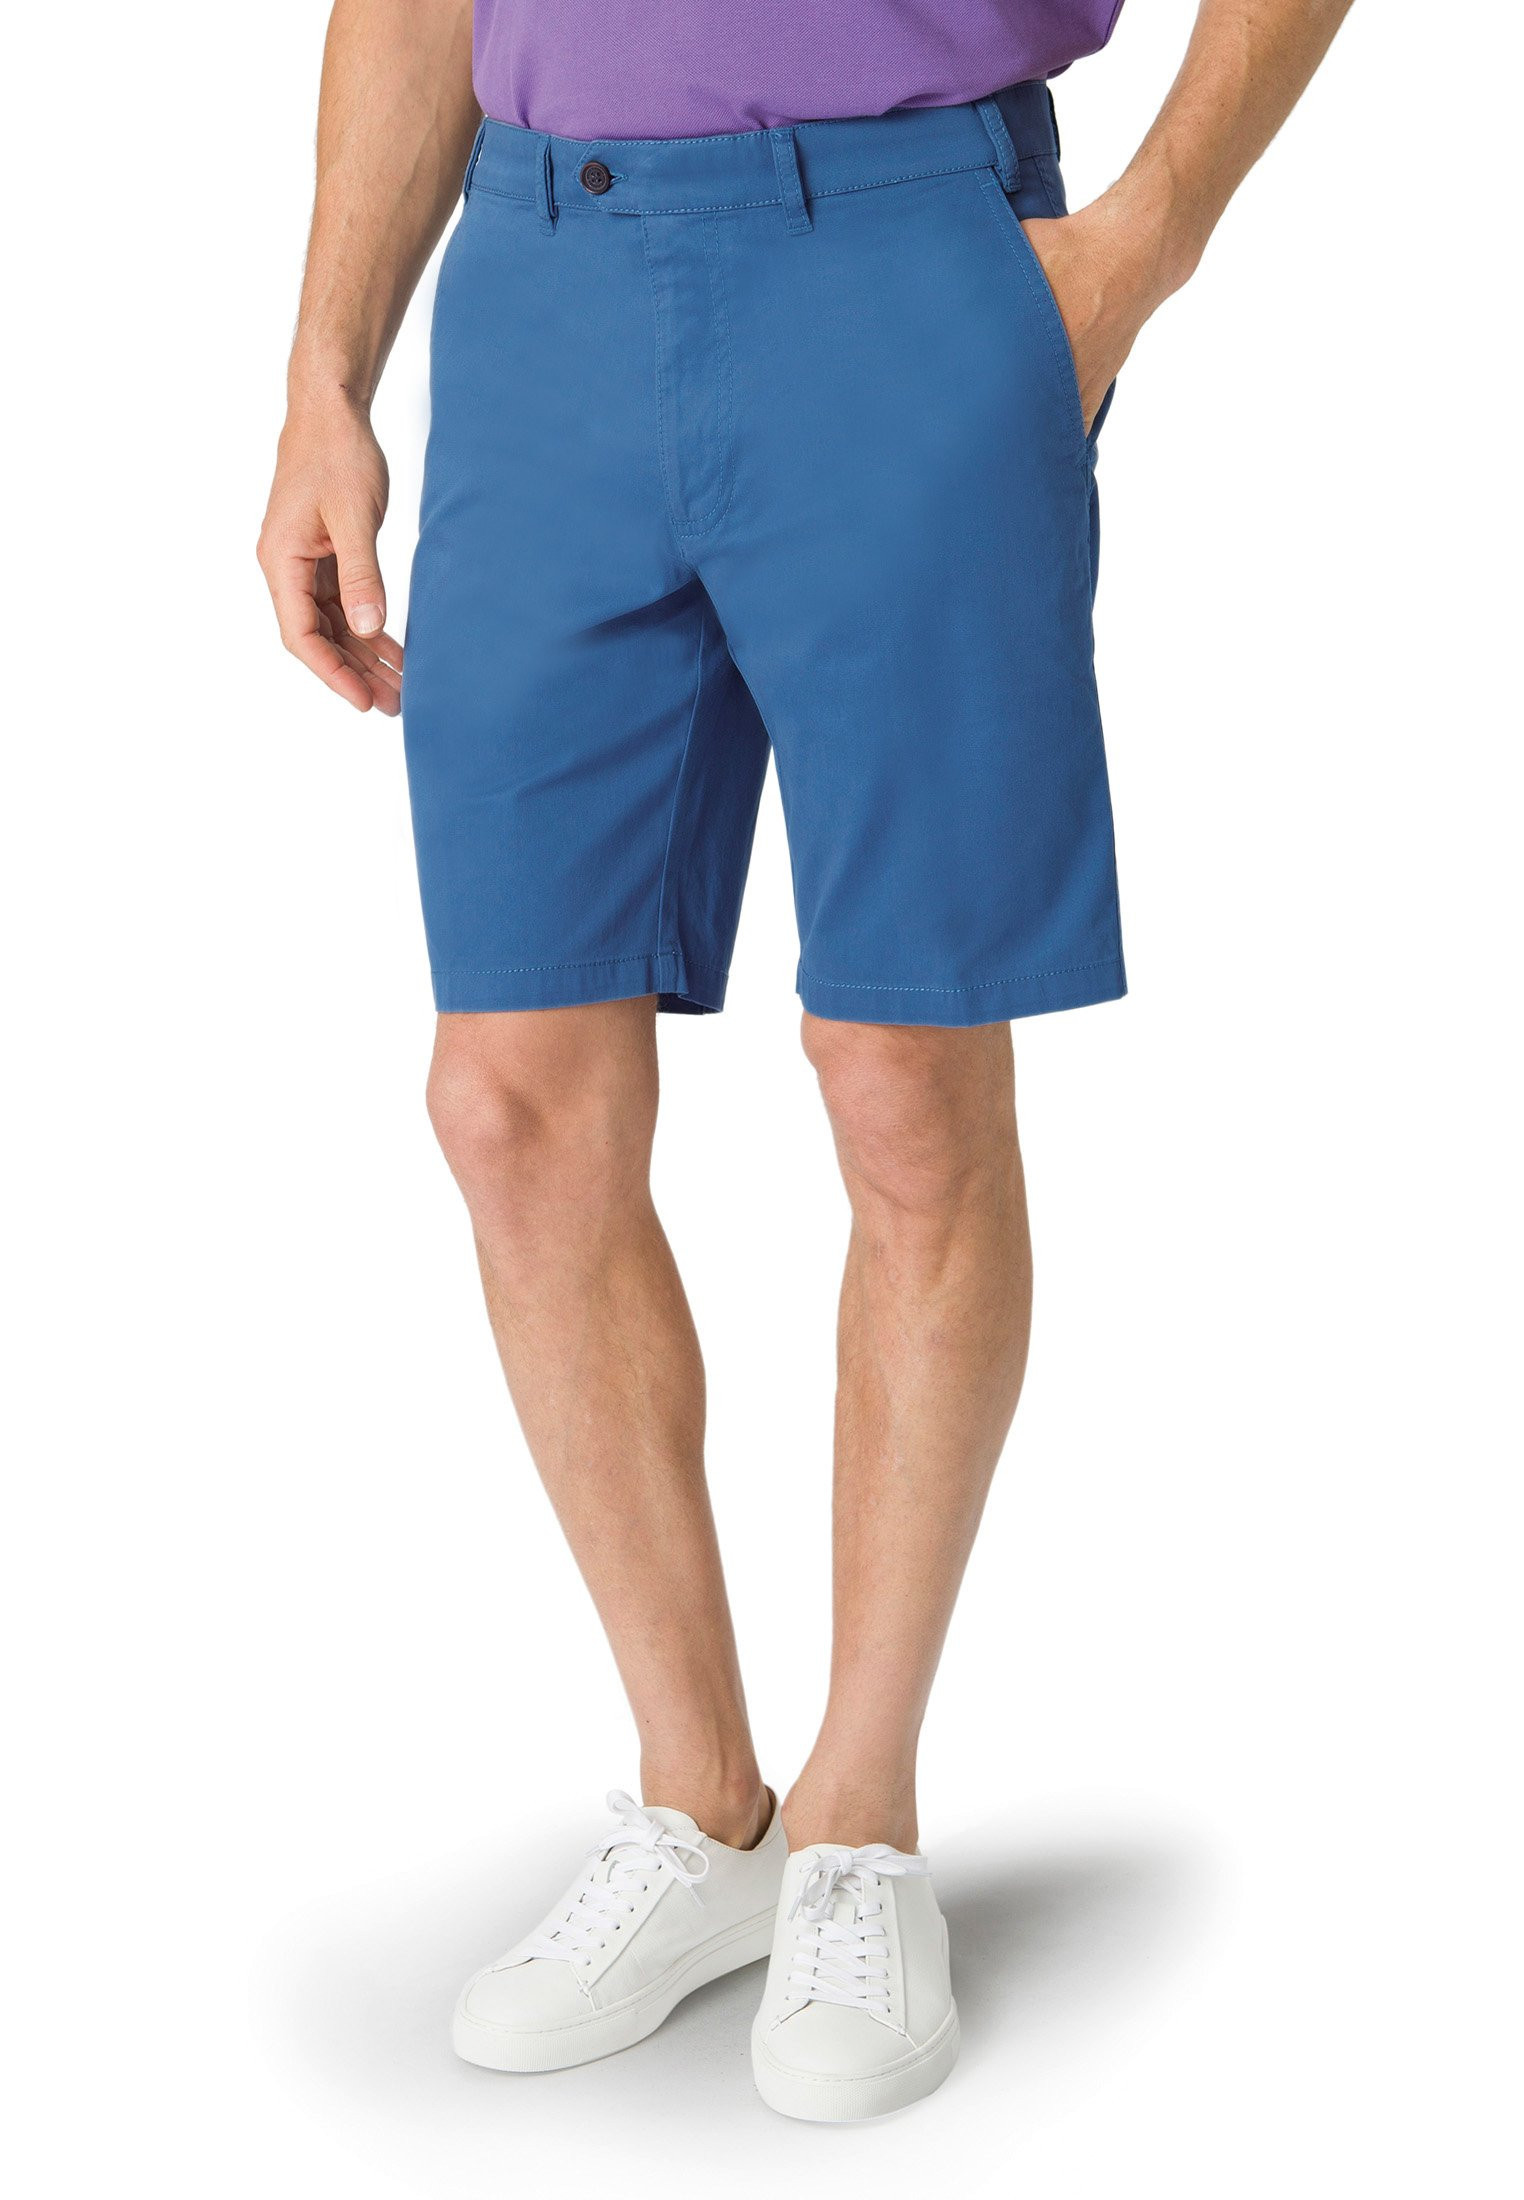 Ribblesdale Sky Blue Cotton Stretch Summer Shorts